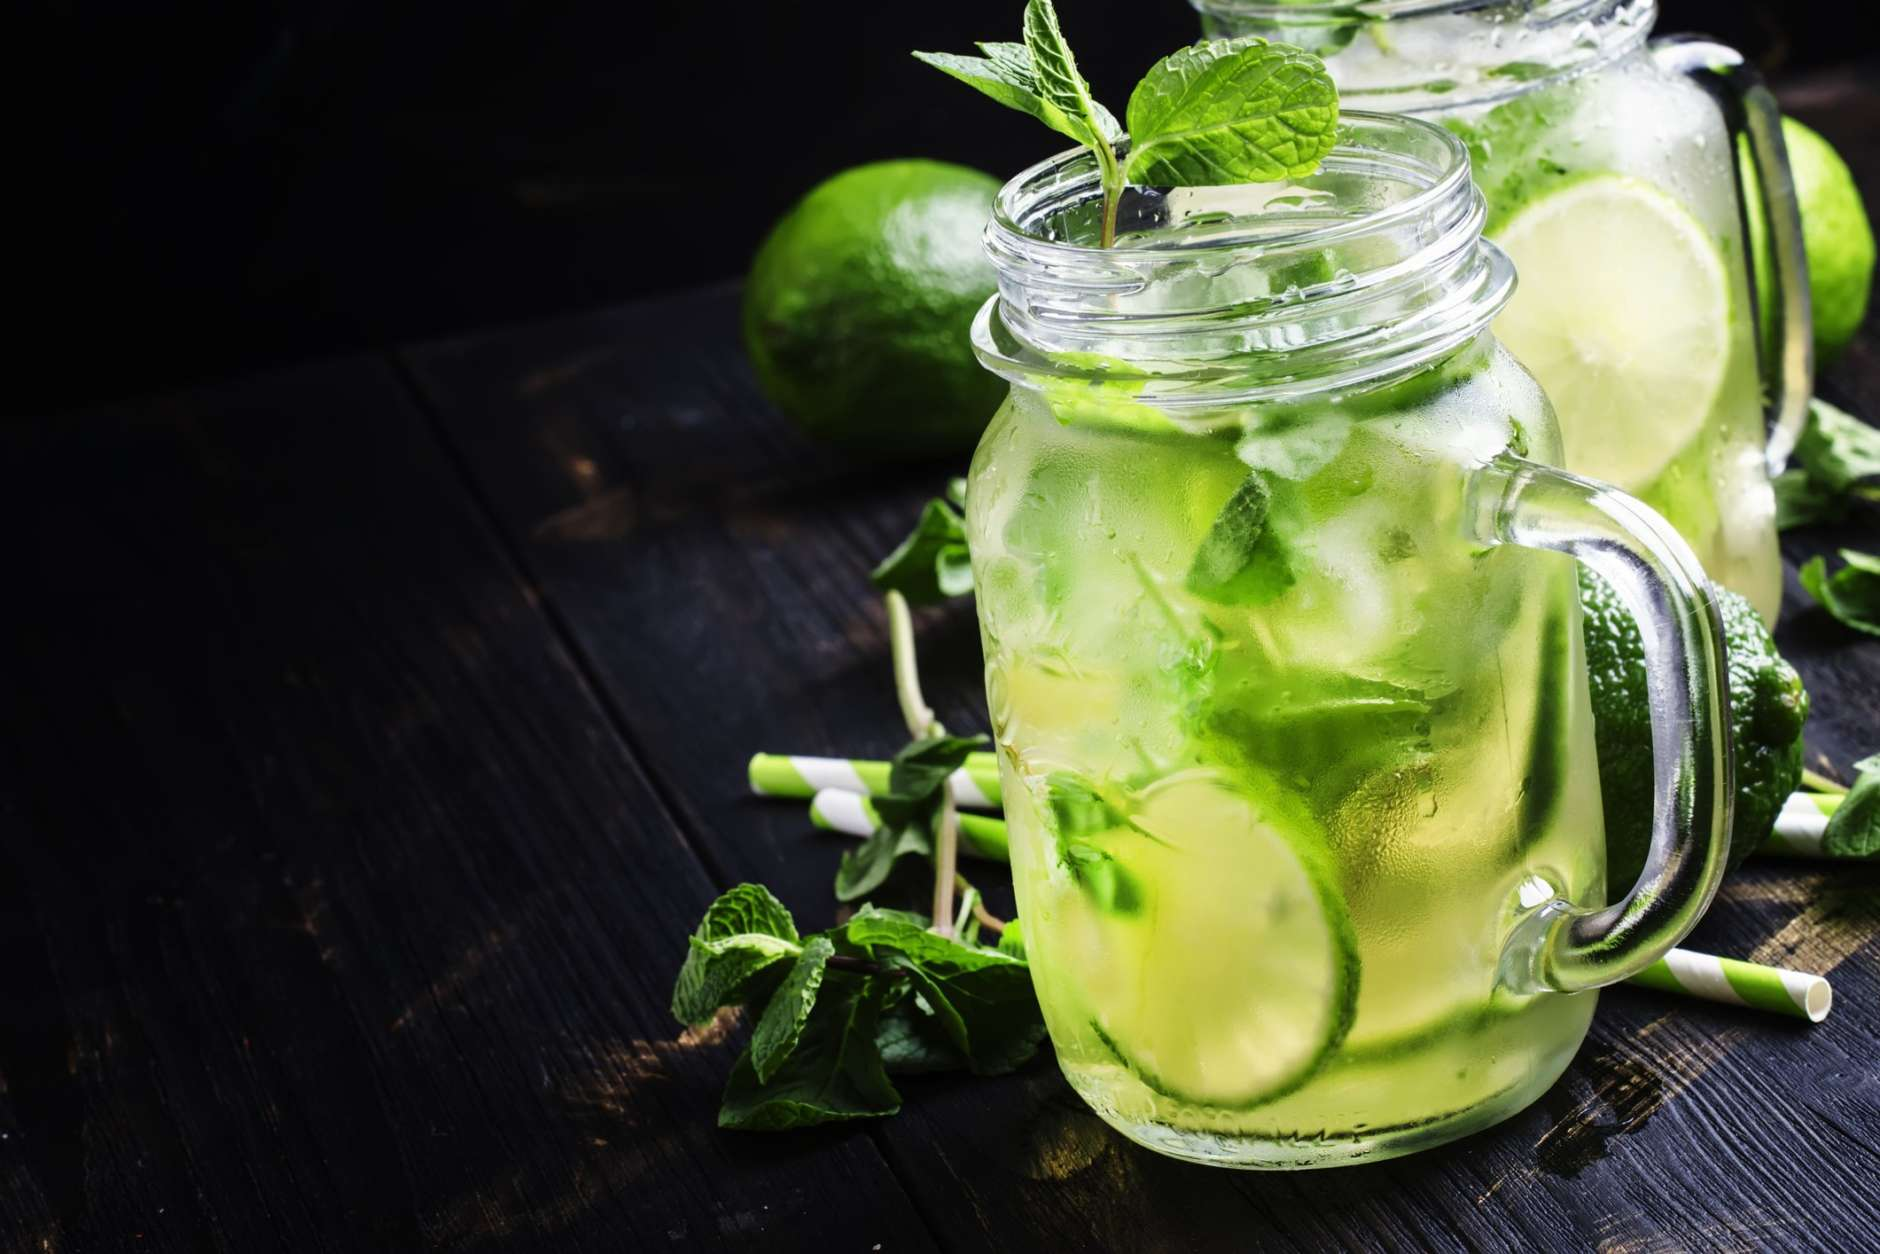 The antioxidants in green tea extract can effectively decrease body weight and promote weight maintenance. (Thinkstock)